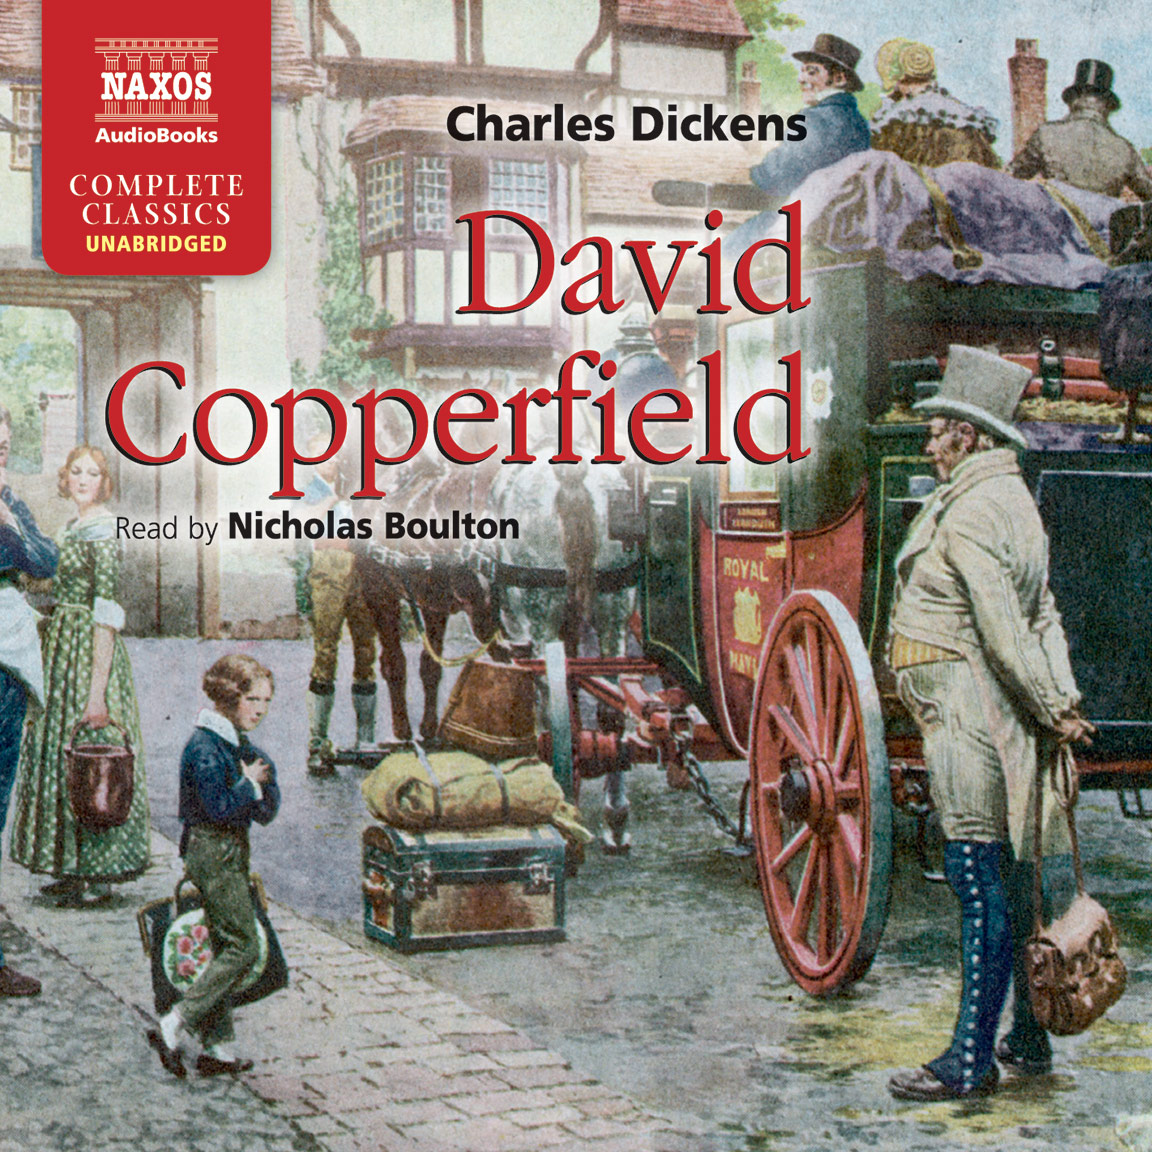 david copperfield abridged naxos audiobooks david copperfield unabridged